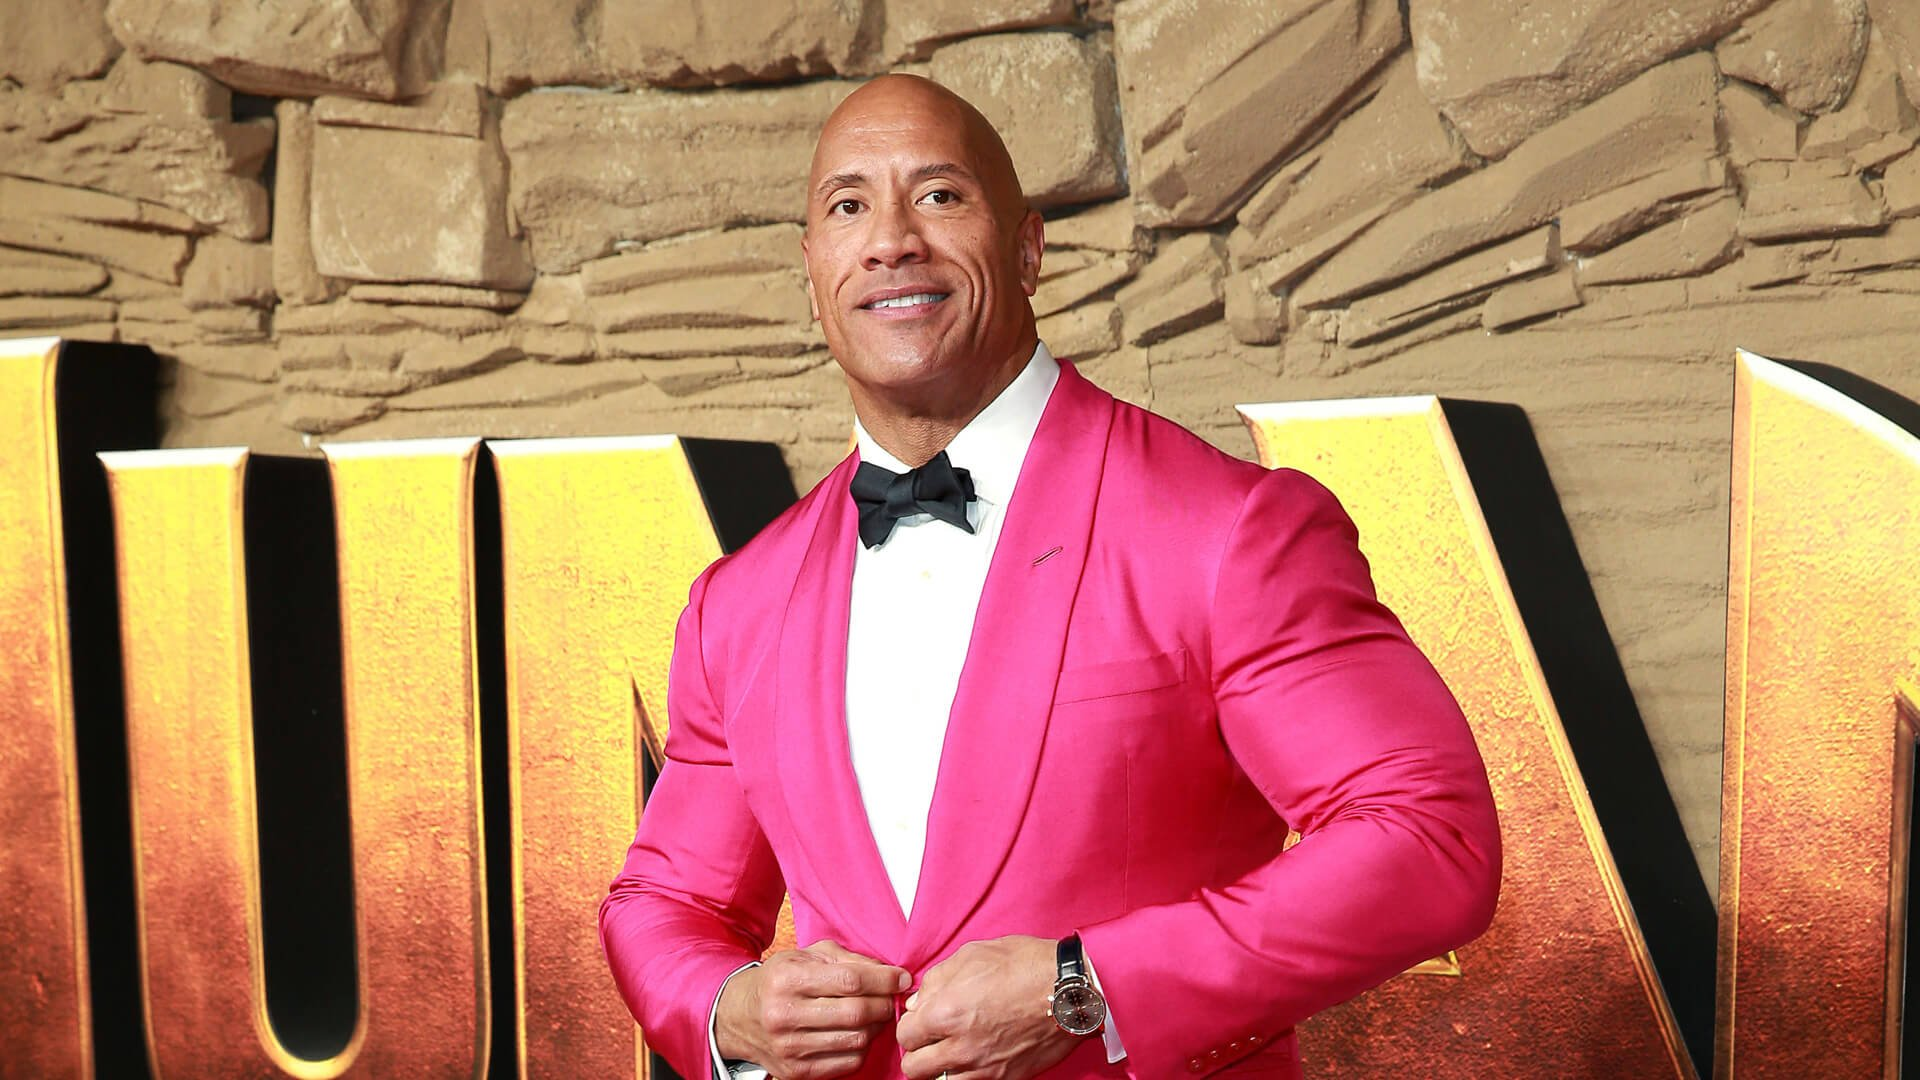 Dwayne 'The Rock' Johnson's Growing Net Worth as Hollywood's Highest Paid Actor